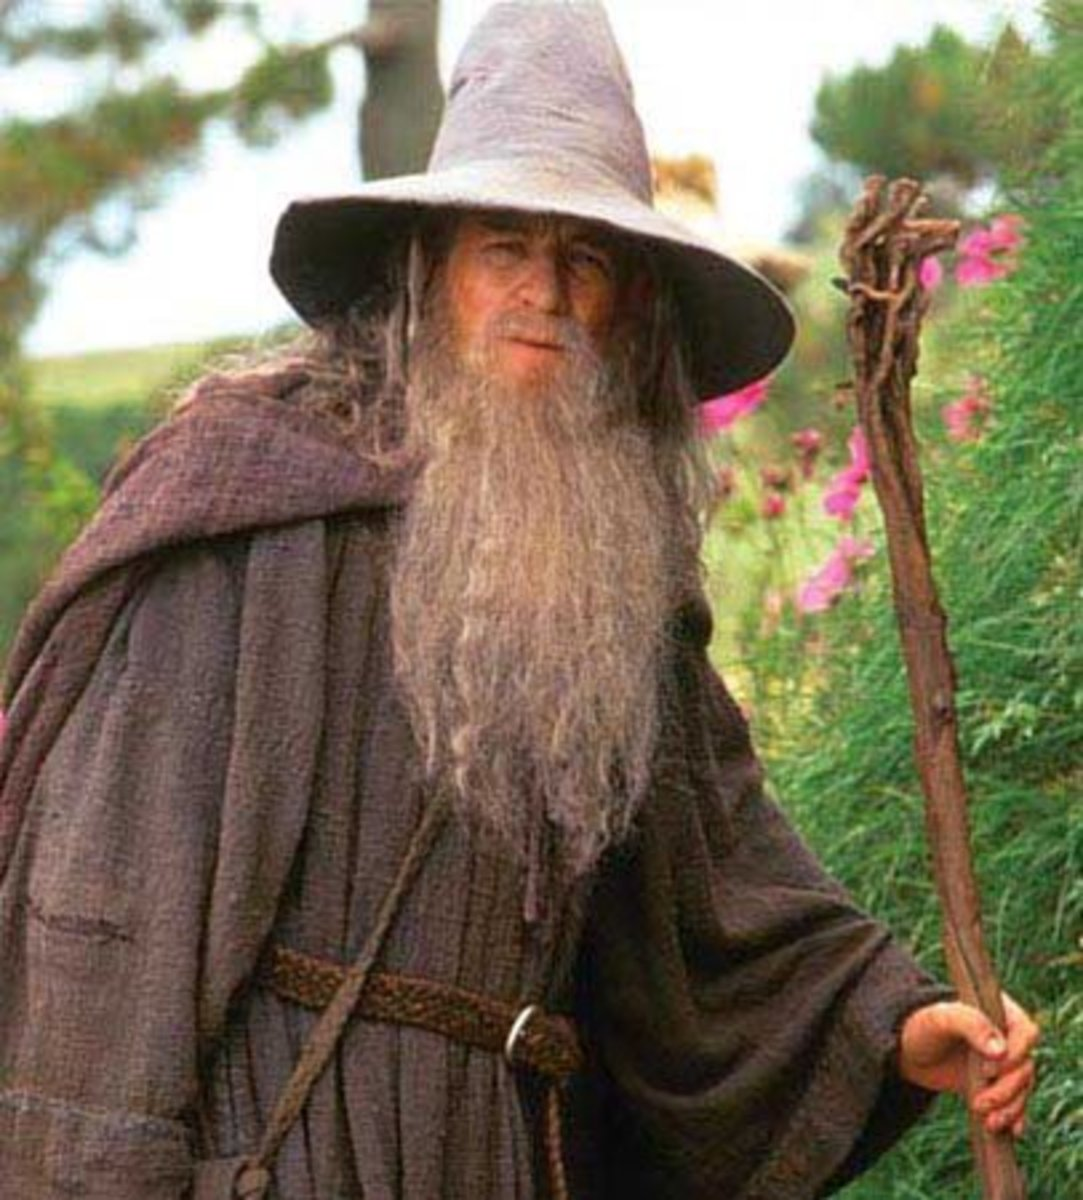 Helpe me write my essay, Lord of the rings Christian themes and elements? any ideas?